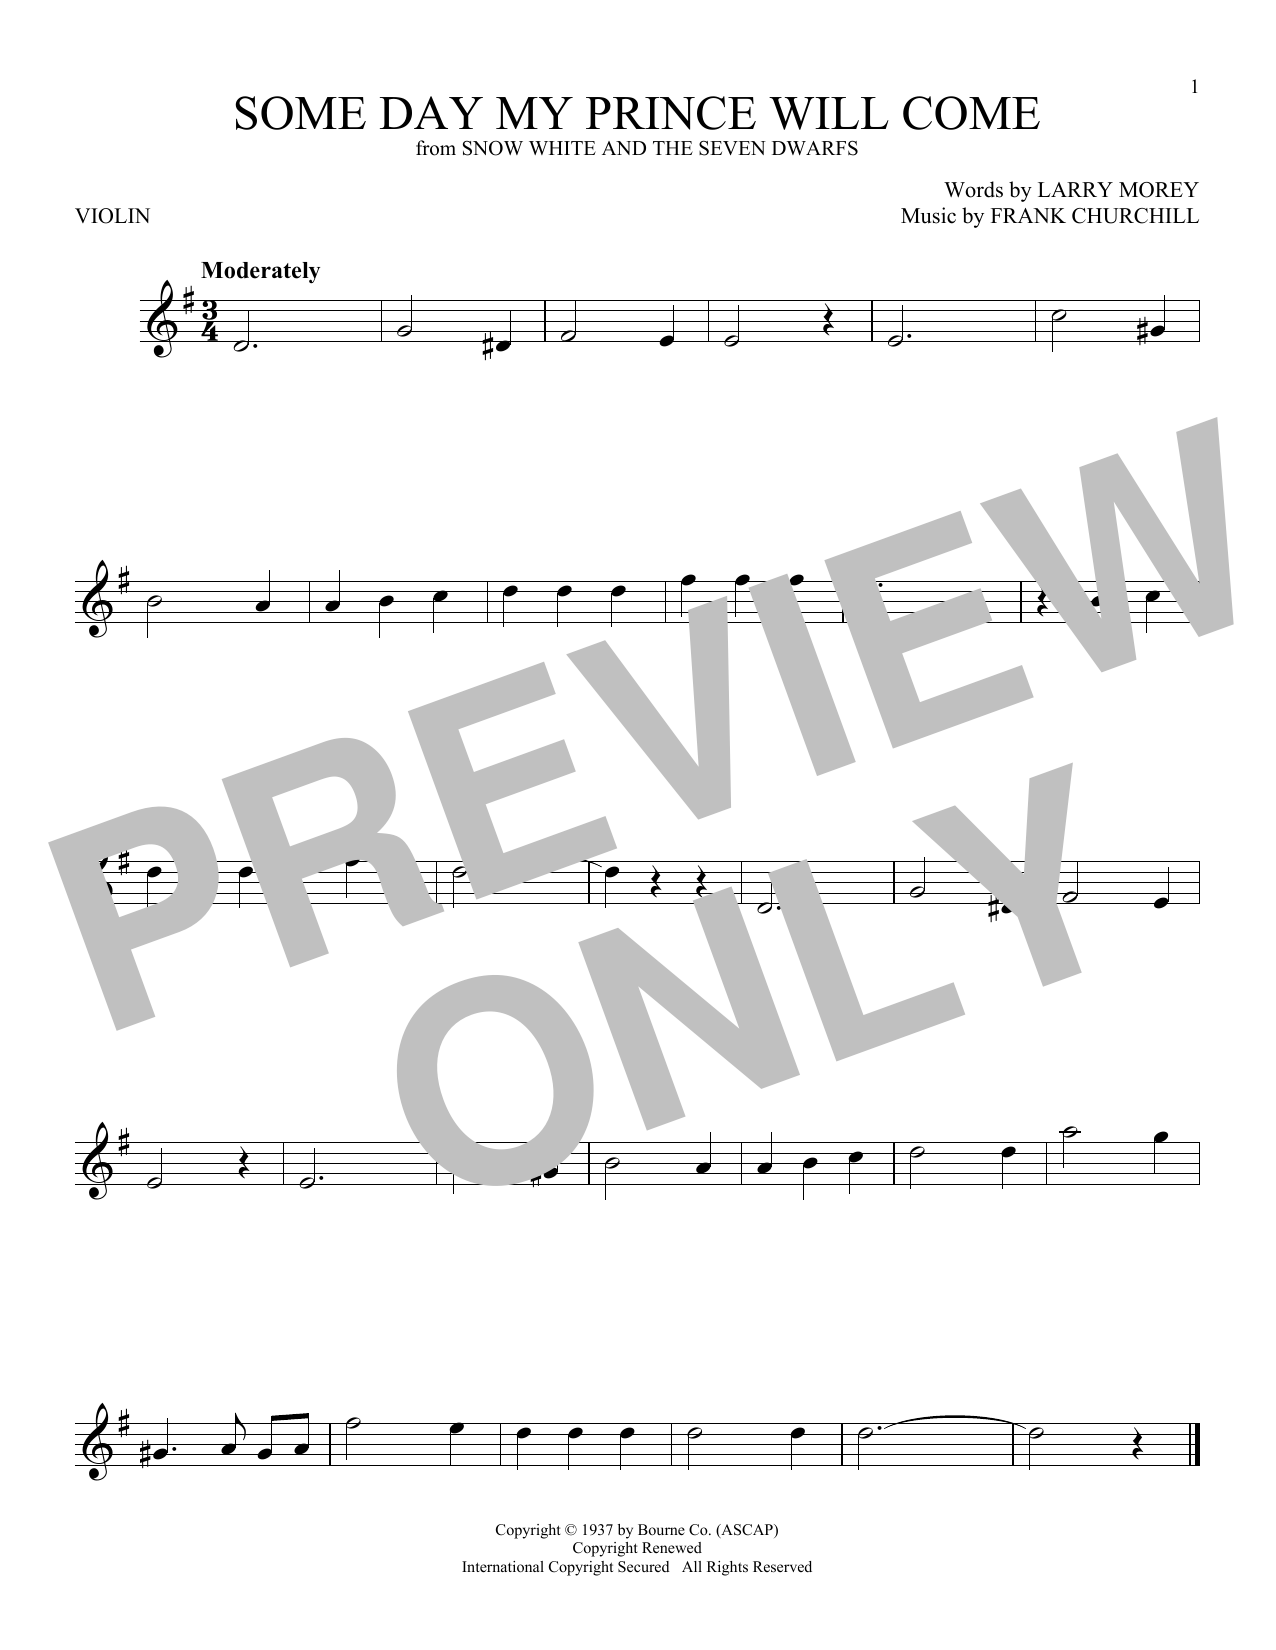 Frank Churchill 'Some Day My Prince Will Come' Sheet Music Notes, Chords |  Download Printable Violin - SKU: 199740